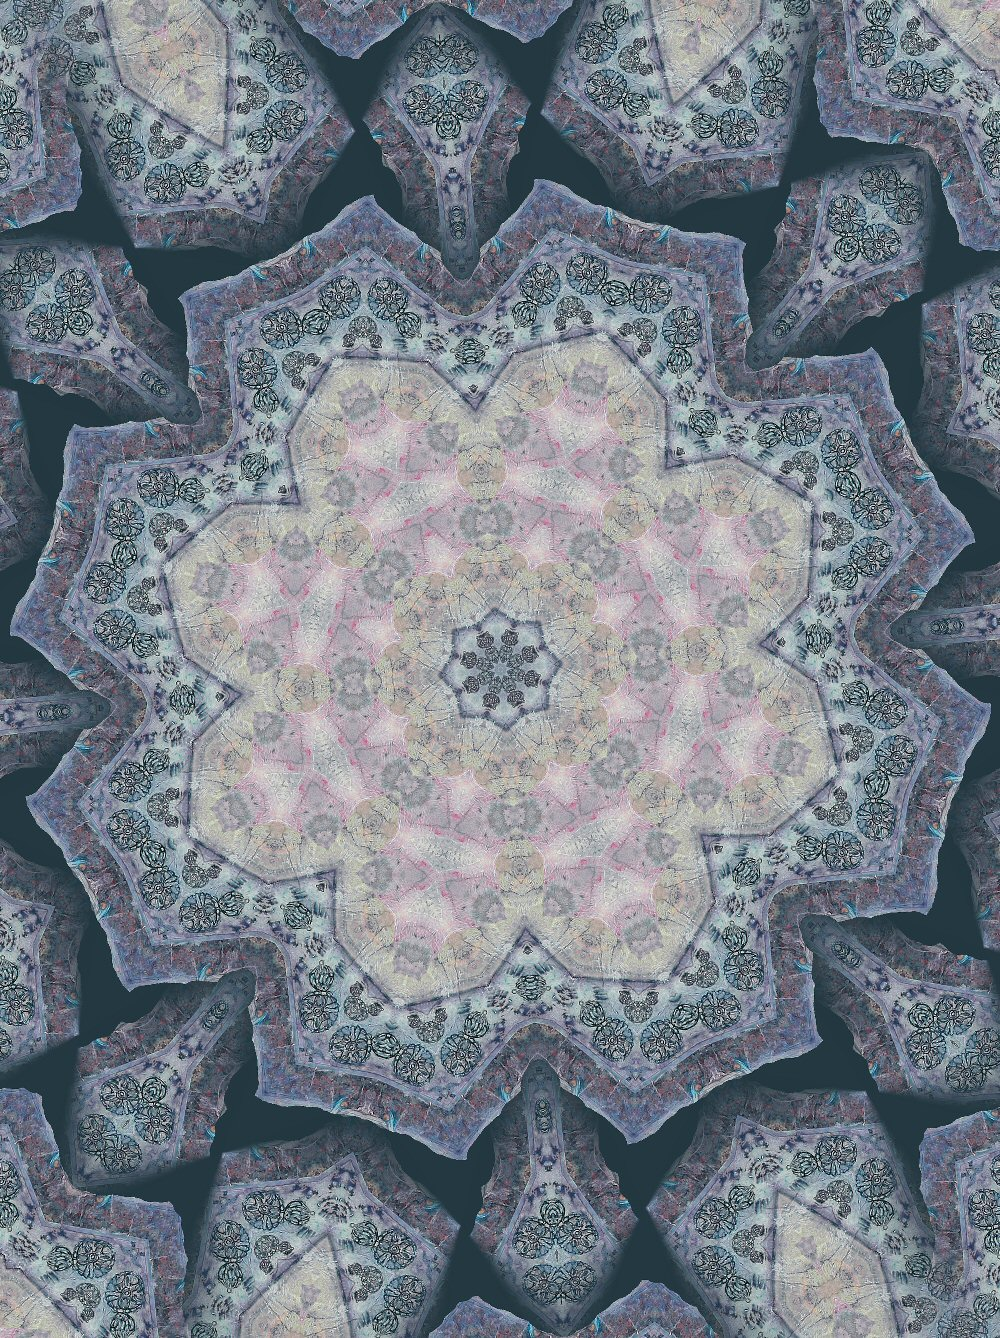 Transits of venus home of livingmoonastrology one of my mandalas nvjuhfo Gallery